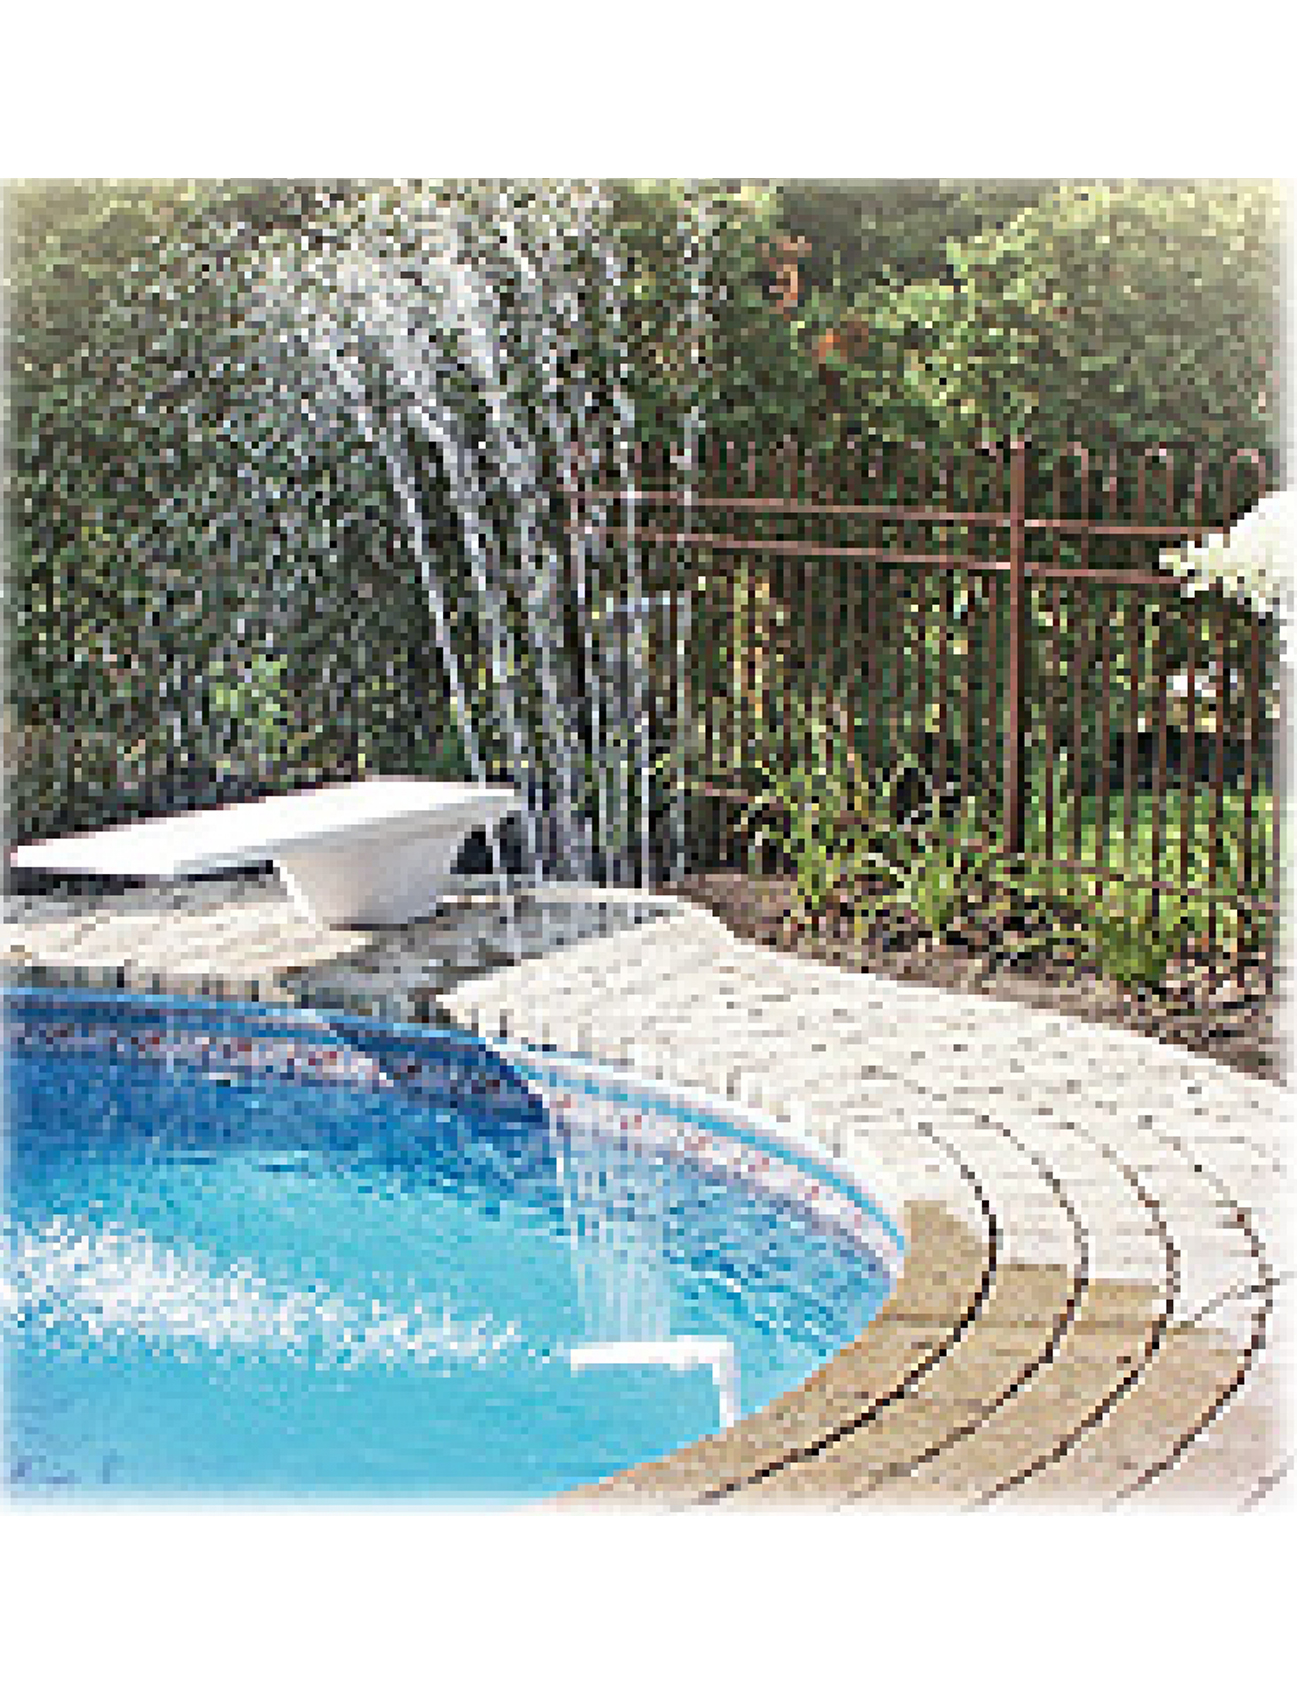 Above Ground Wonder Pool Swimming Pool Fountain For Steel Wall Pools Ebay